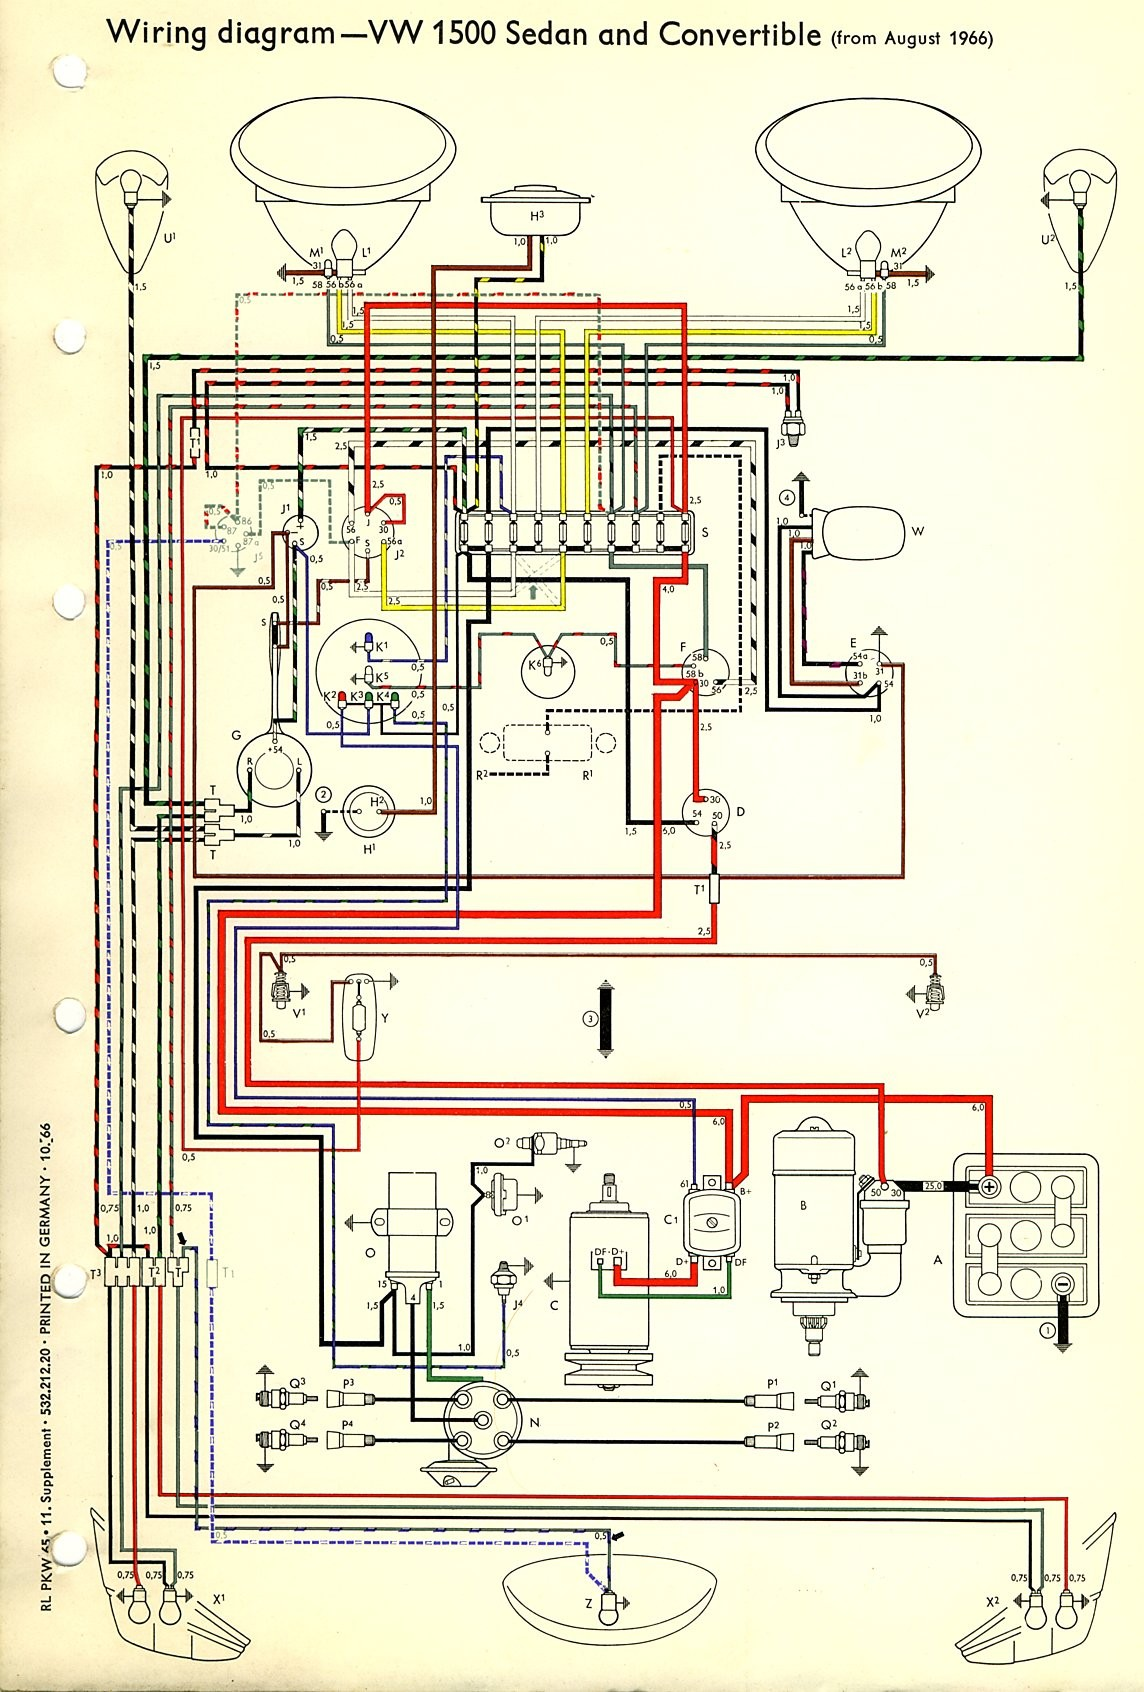 DIAGRAM] 2002 Beetle Fuse Block Wiring Diagram FULL Version HD Quality Wiring  Diagram - WIRINGELECTRICSPDF.FN33.FRWiring And Fuse Database